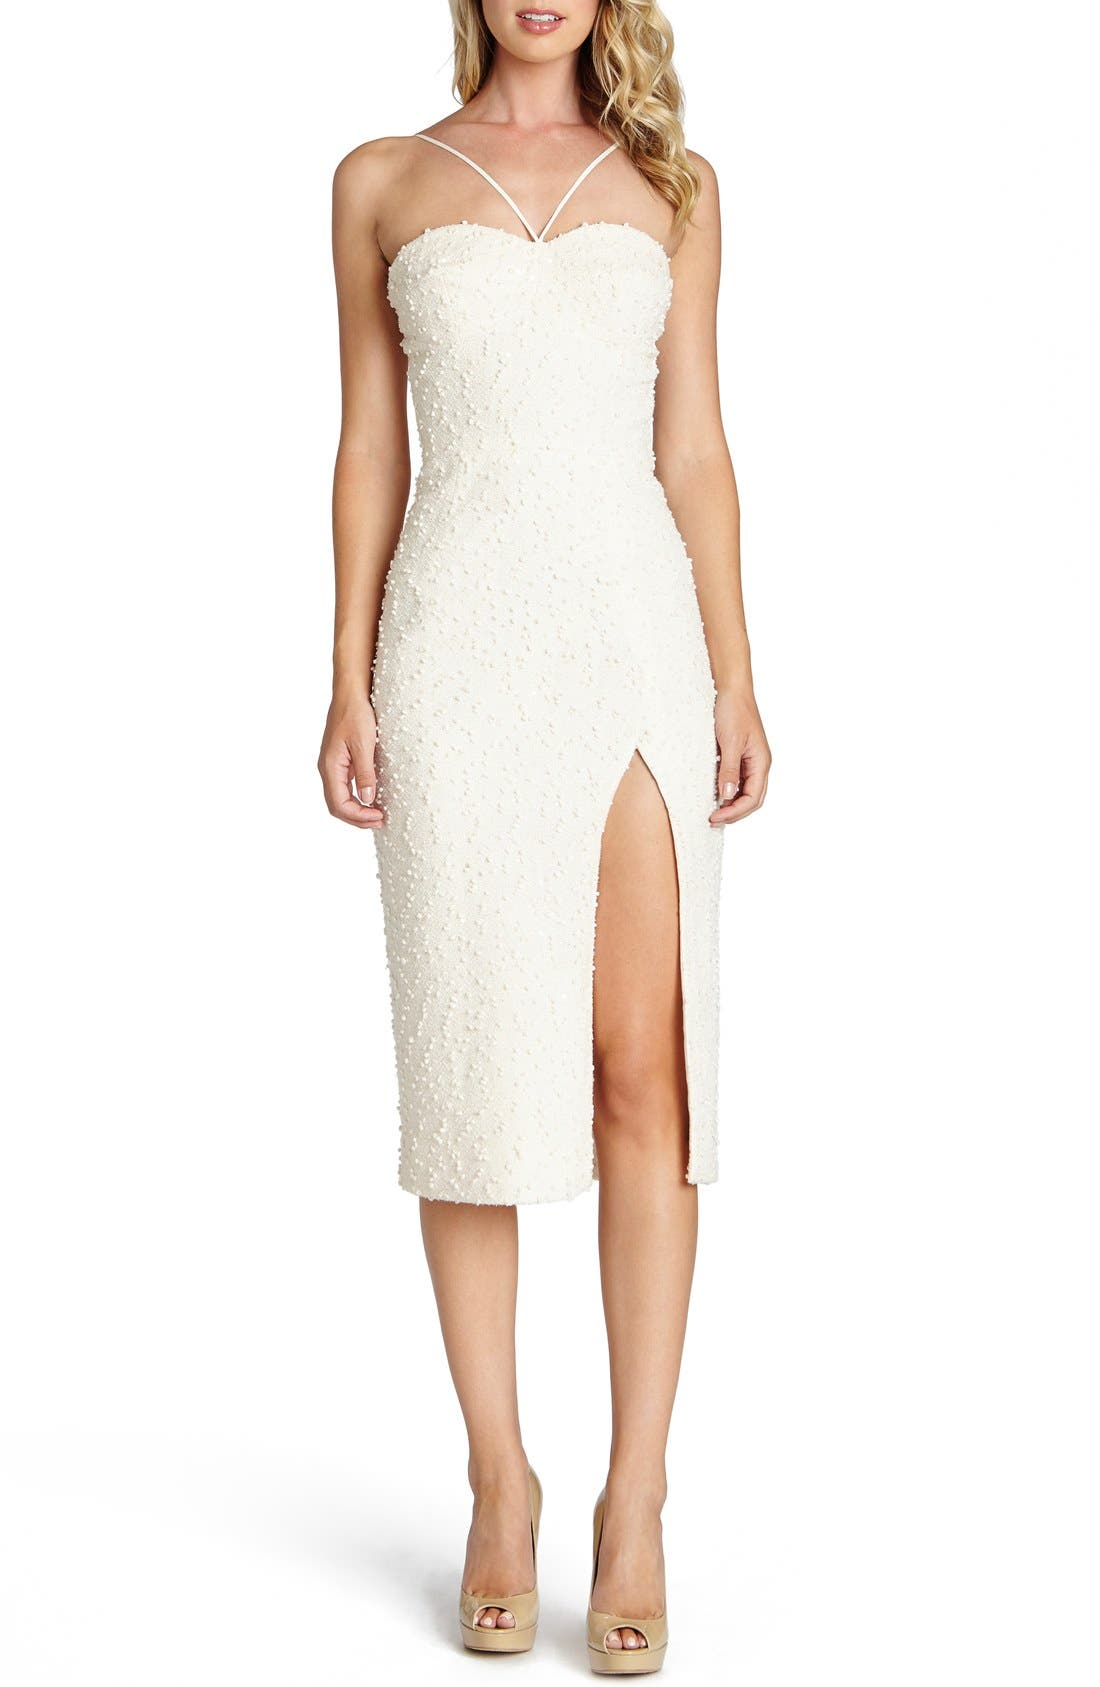 Main Image - Dress the Population 'Luciana' Textured Knit Sheath Dress